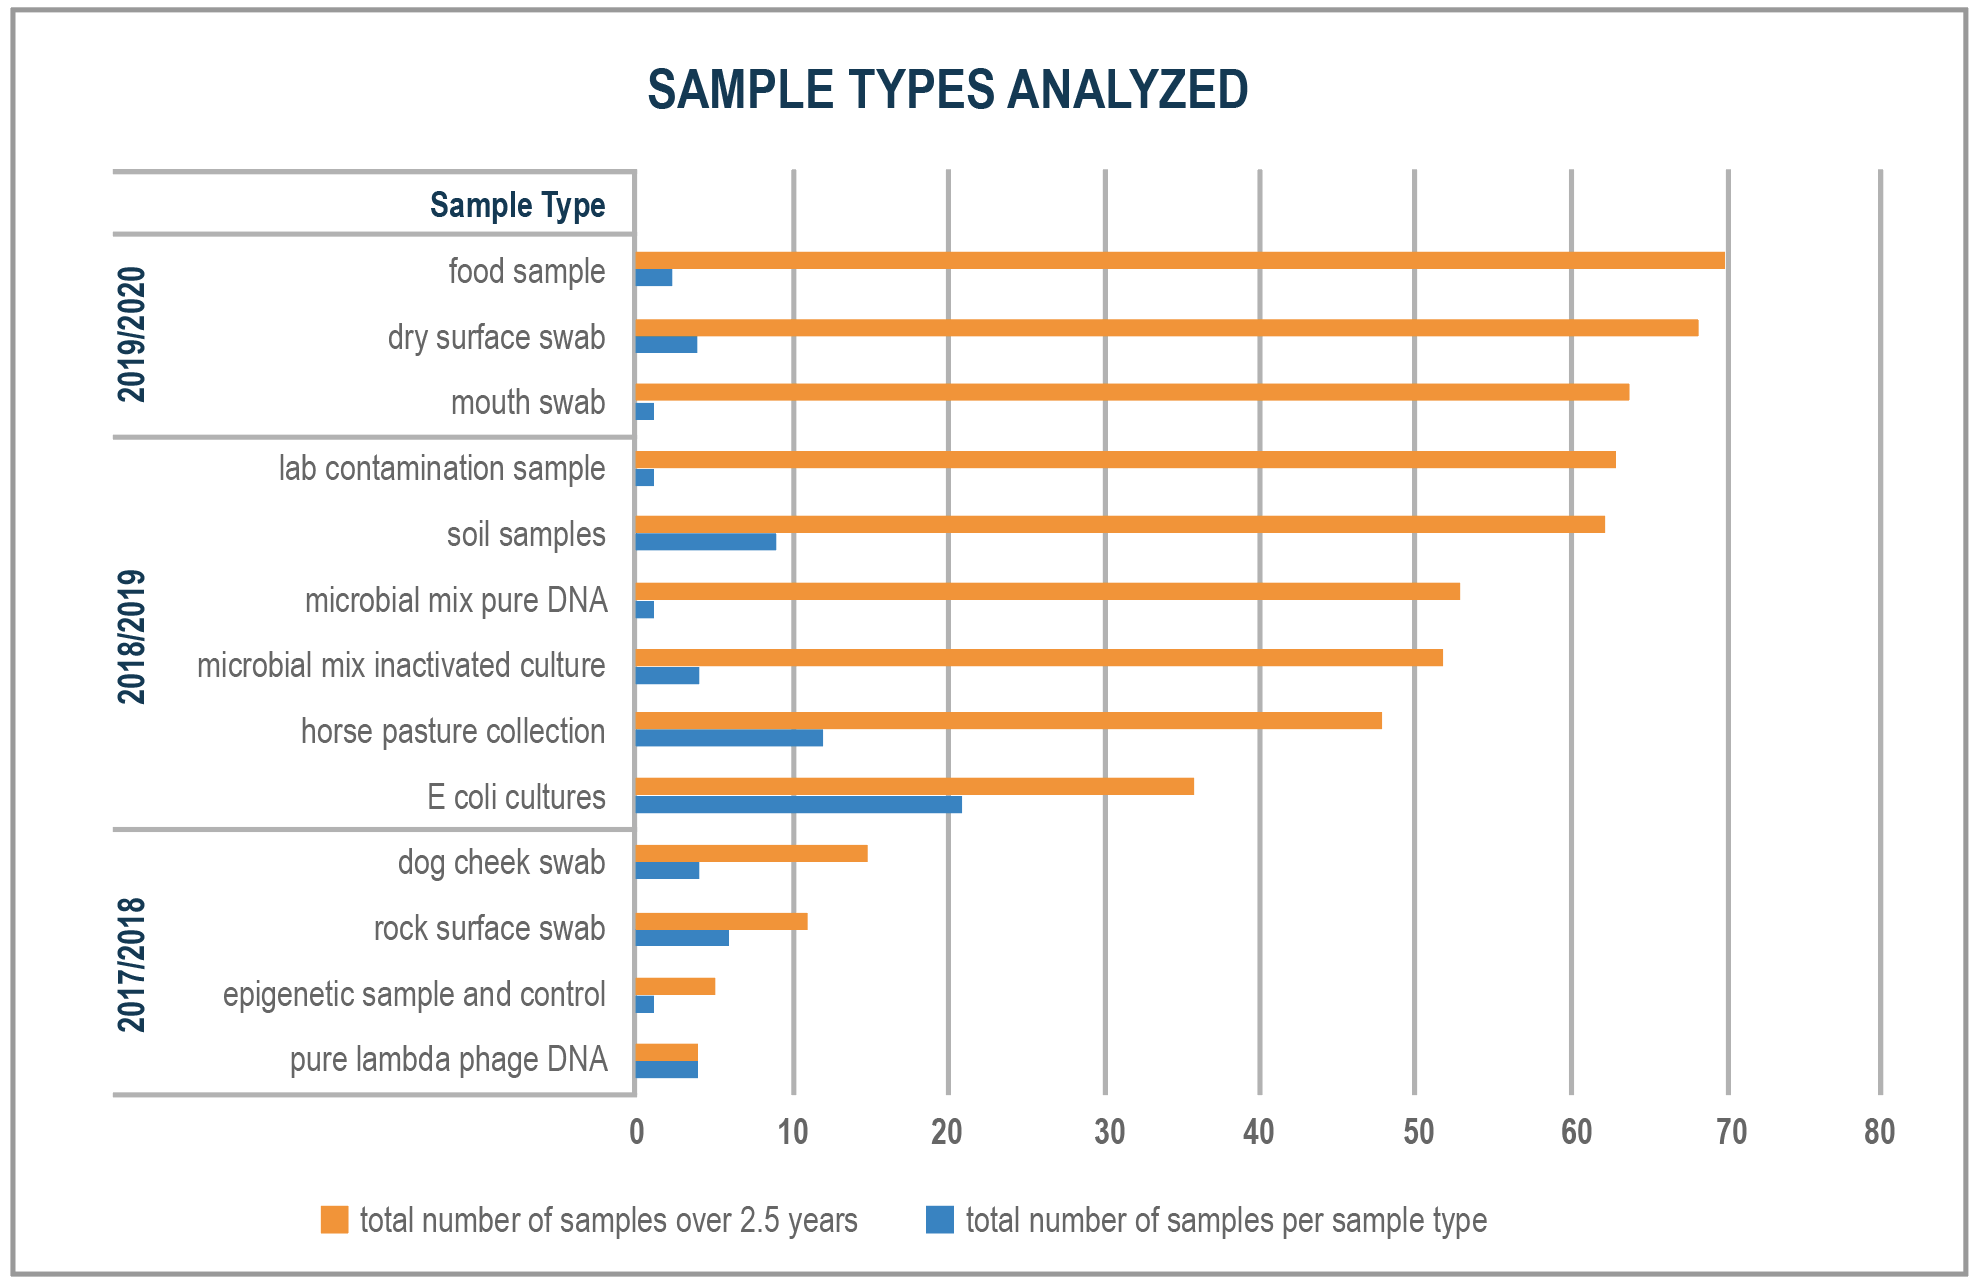 Figure 2 - Chart of Sample Types Analyzed from 2017 to 2020